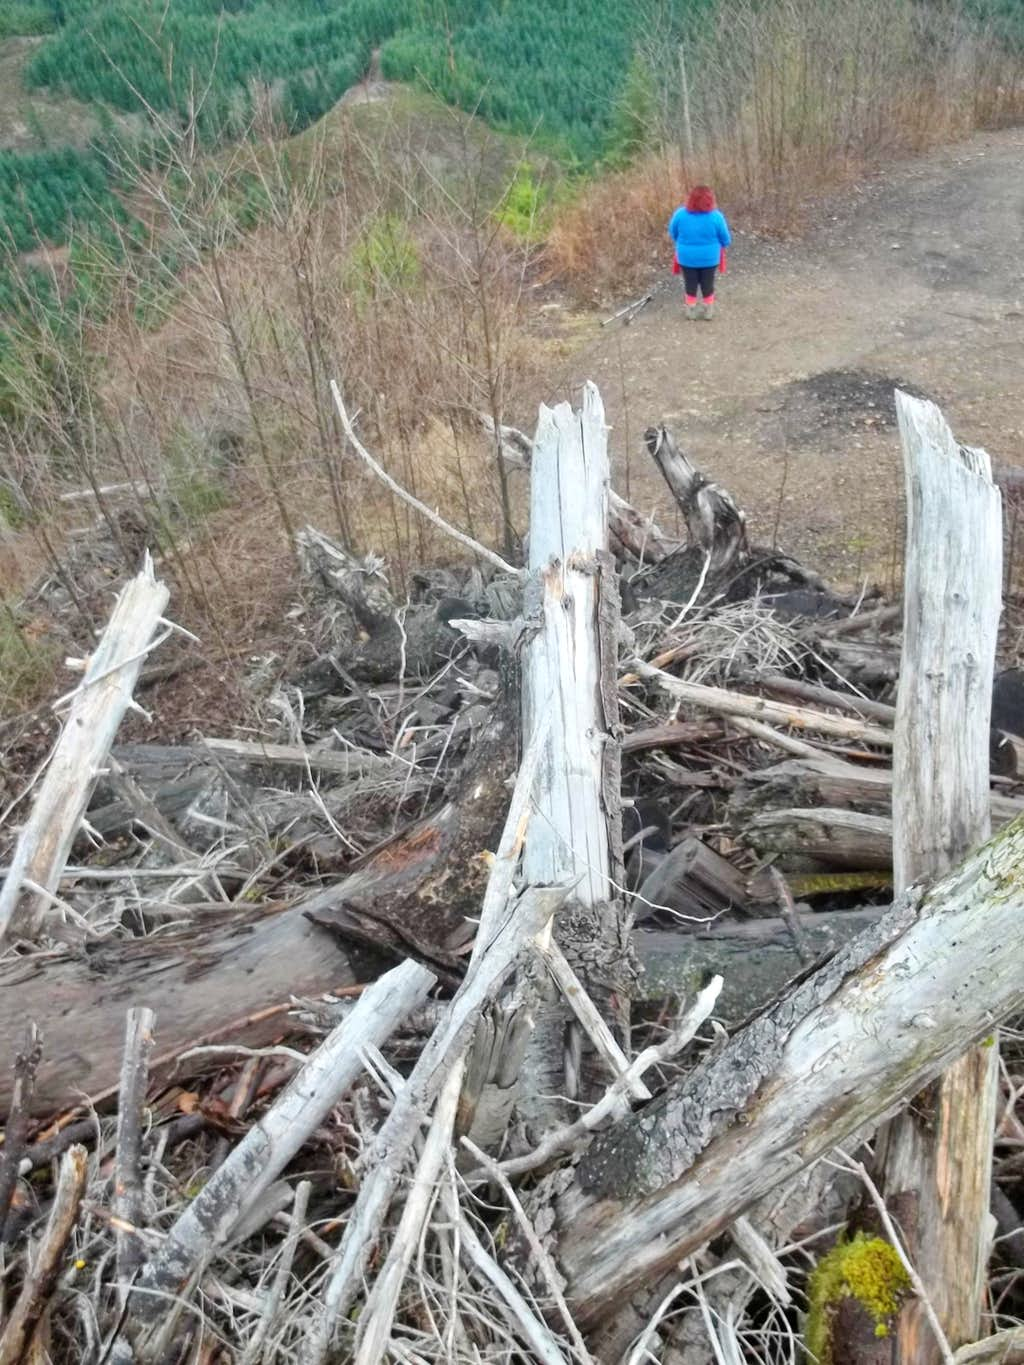 Looking down from the log pile